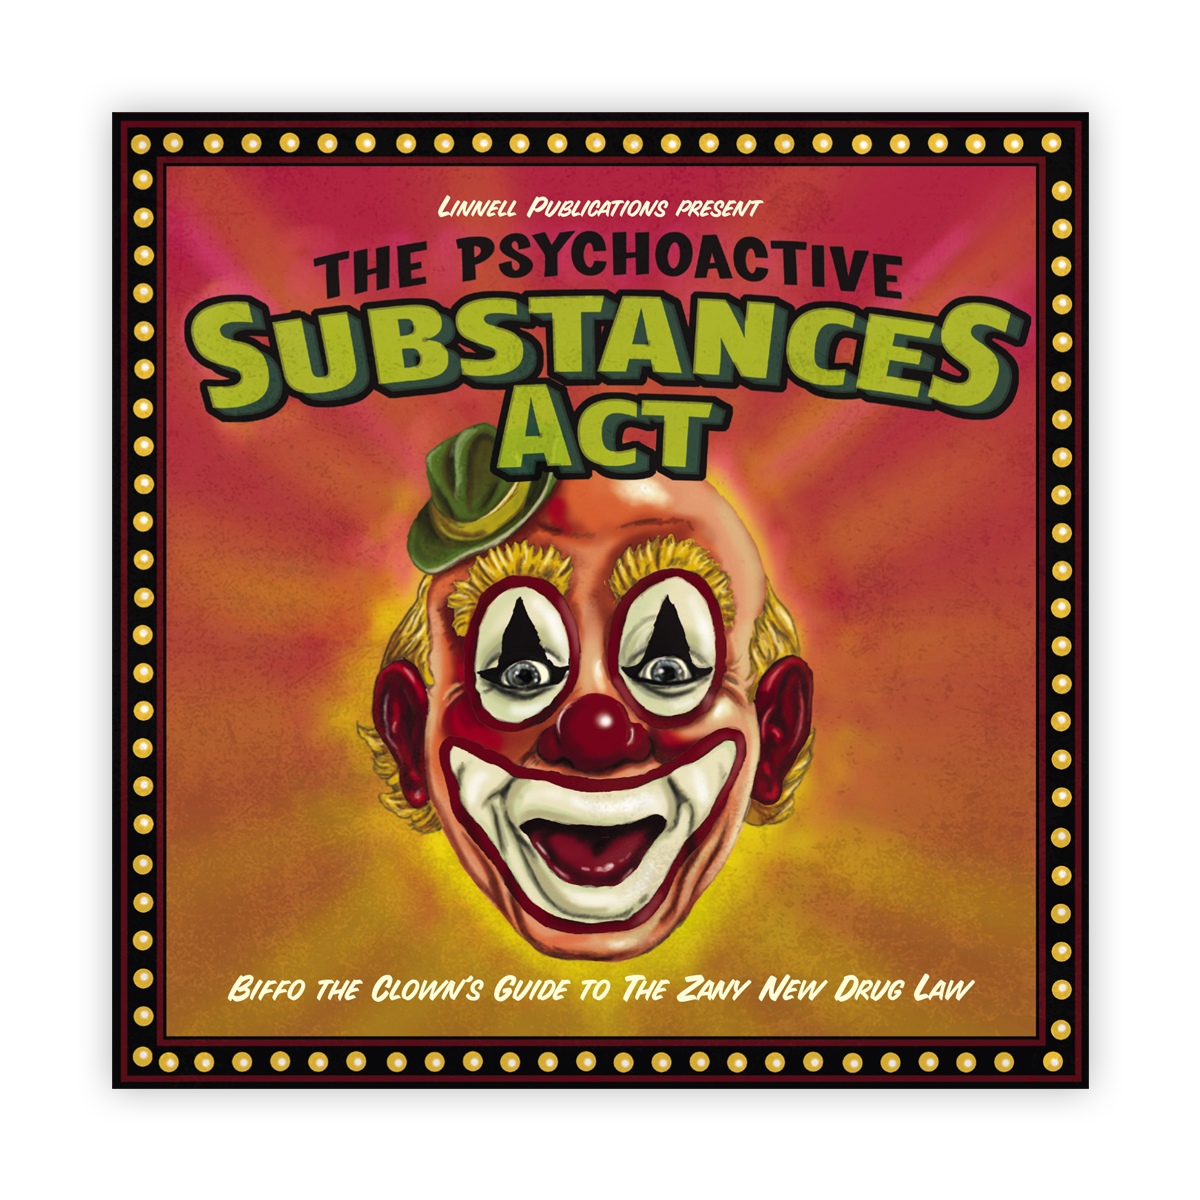 Biffo's guide to the Psychoactive Substances Act